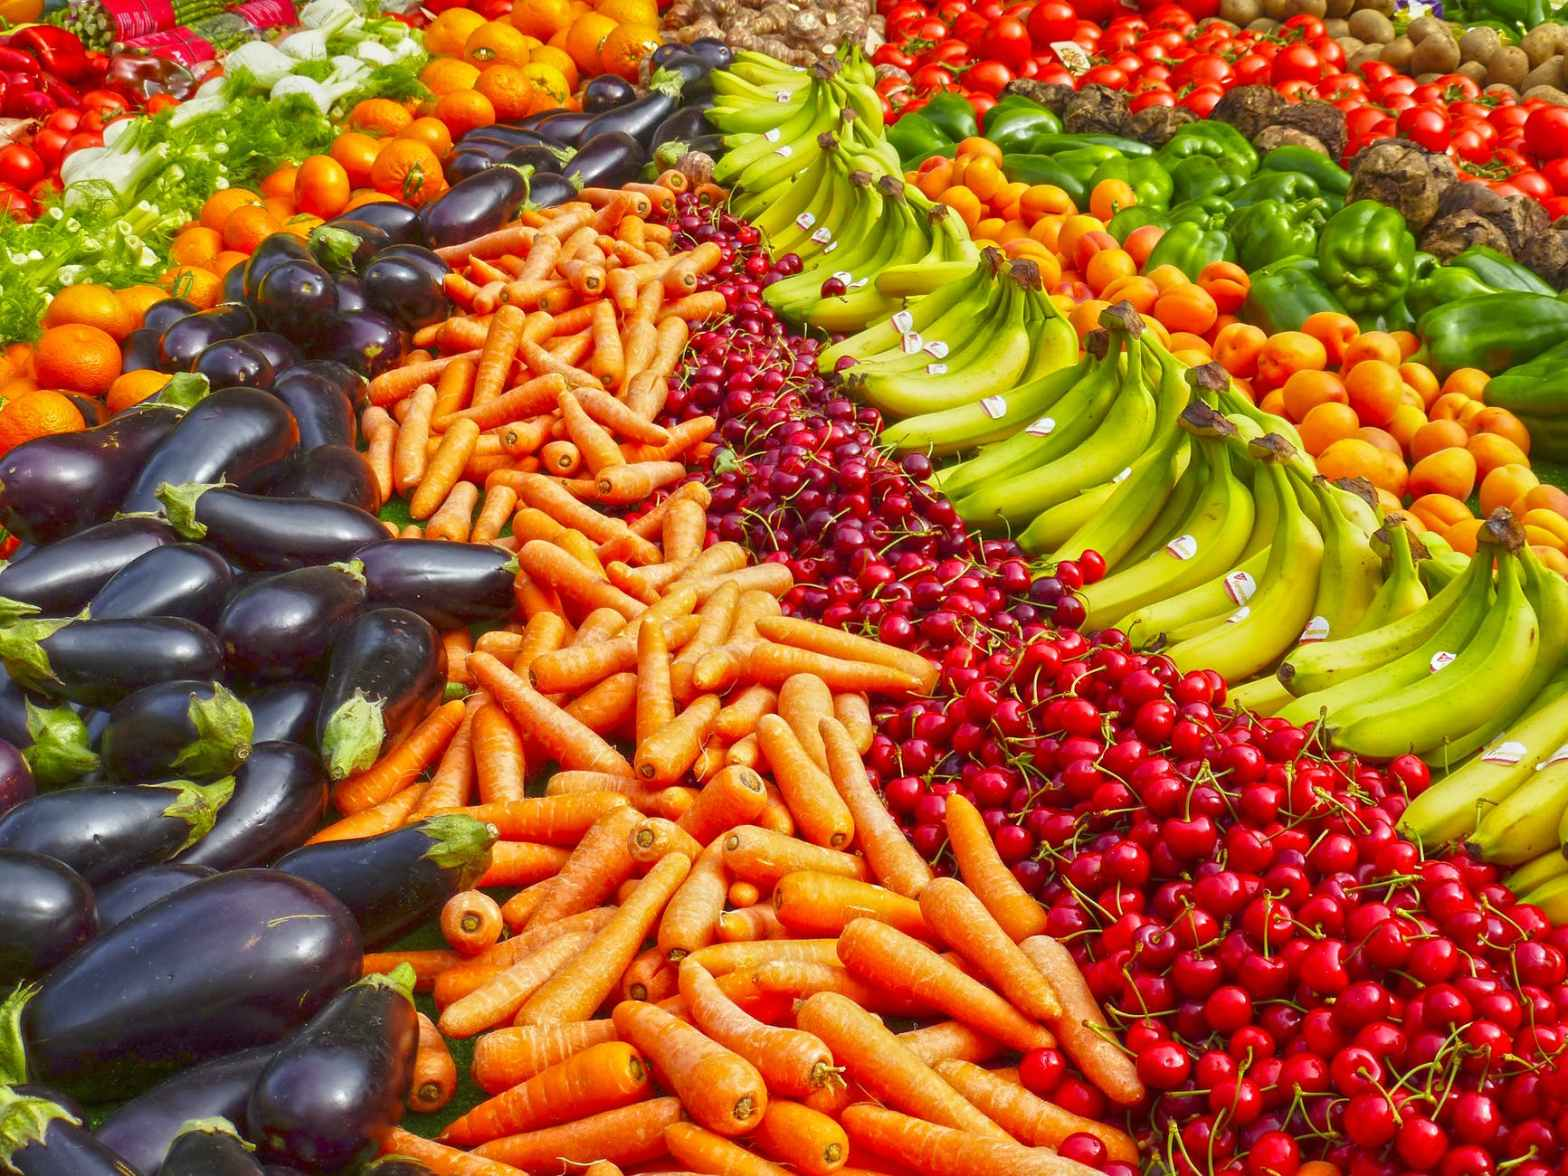 An abundance of fruits and vegetables